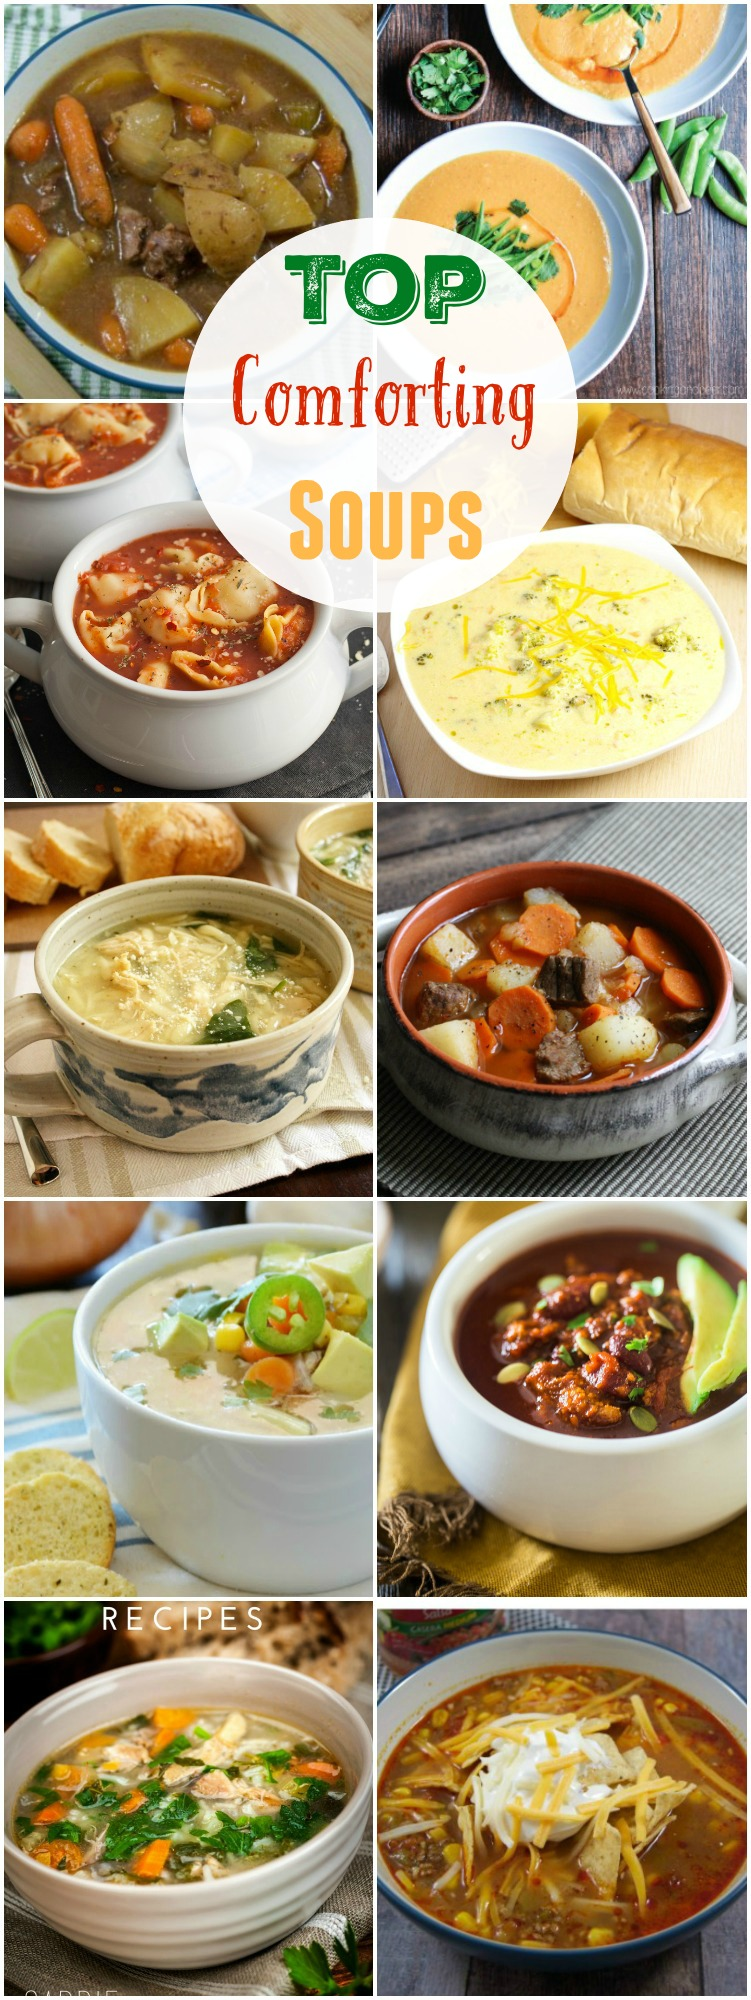 Top Comforting Soups that will get you through the chilly weeknights.